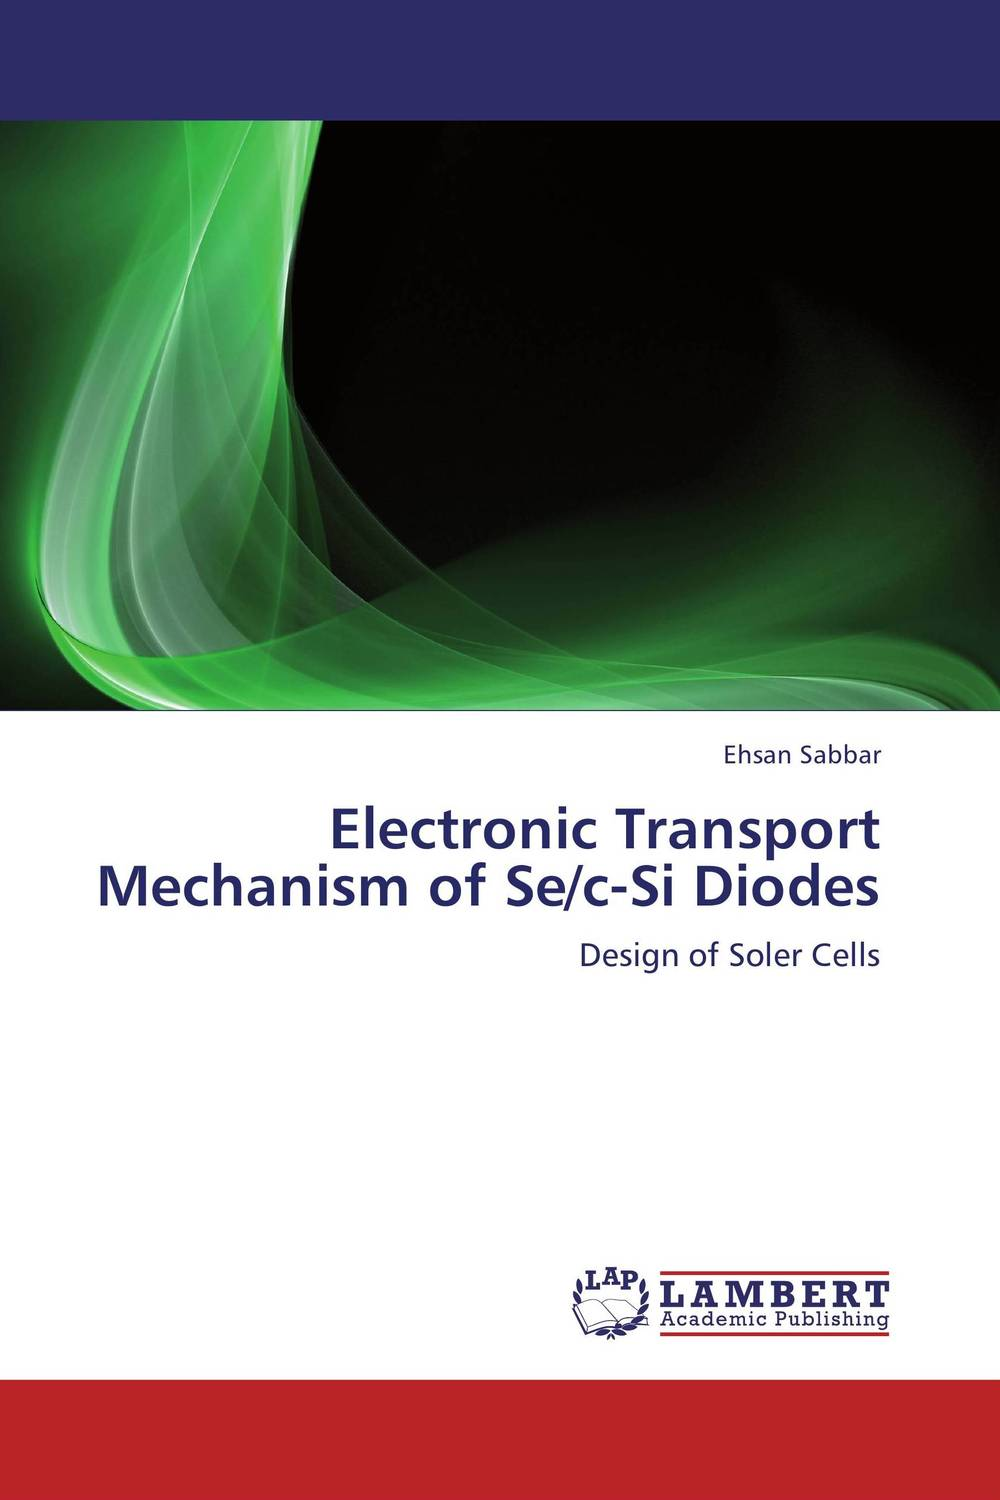 Electronic Transport Mechanism of Se/c-Si Diodes